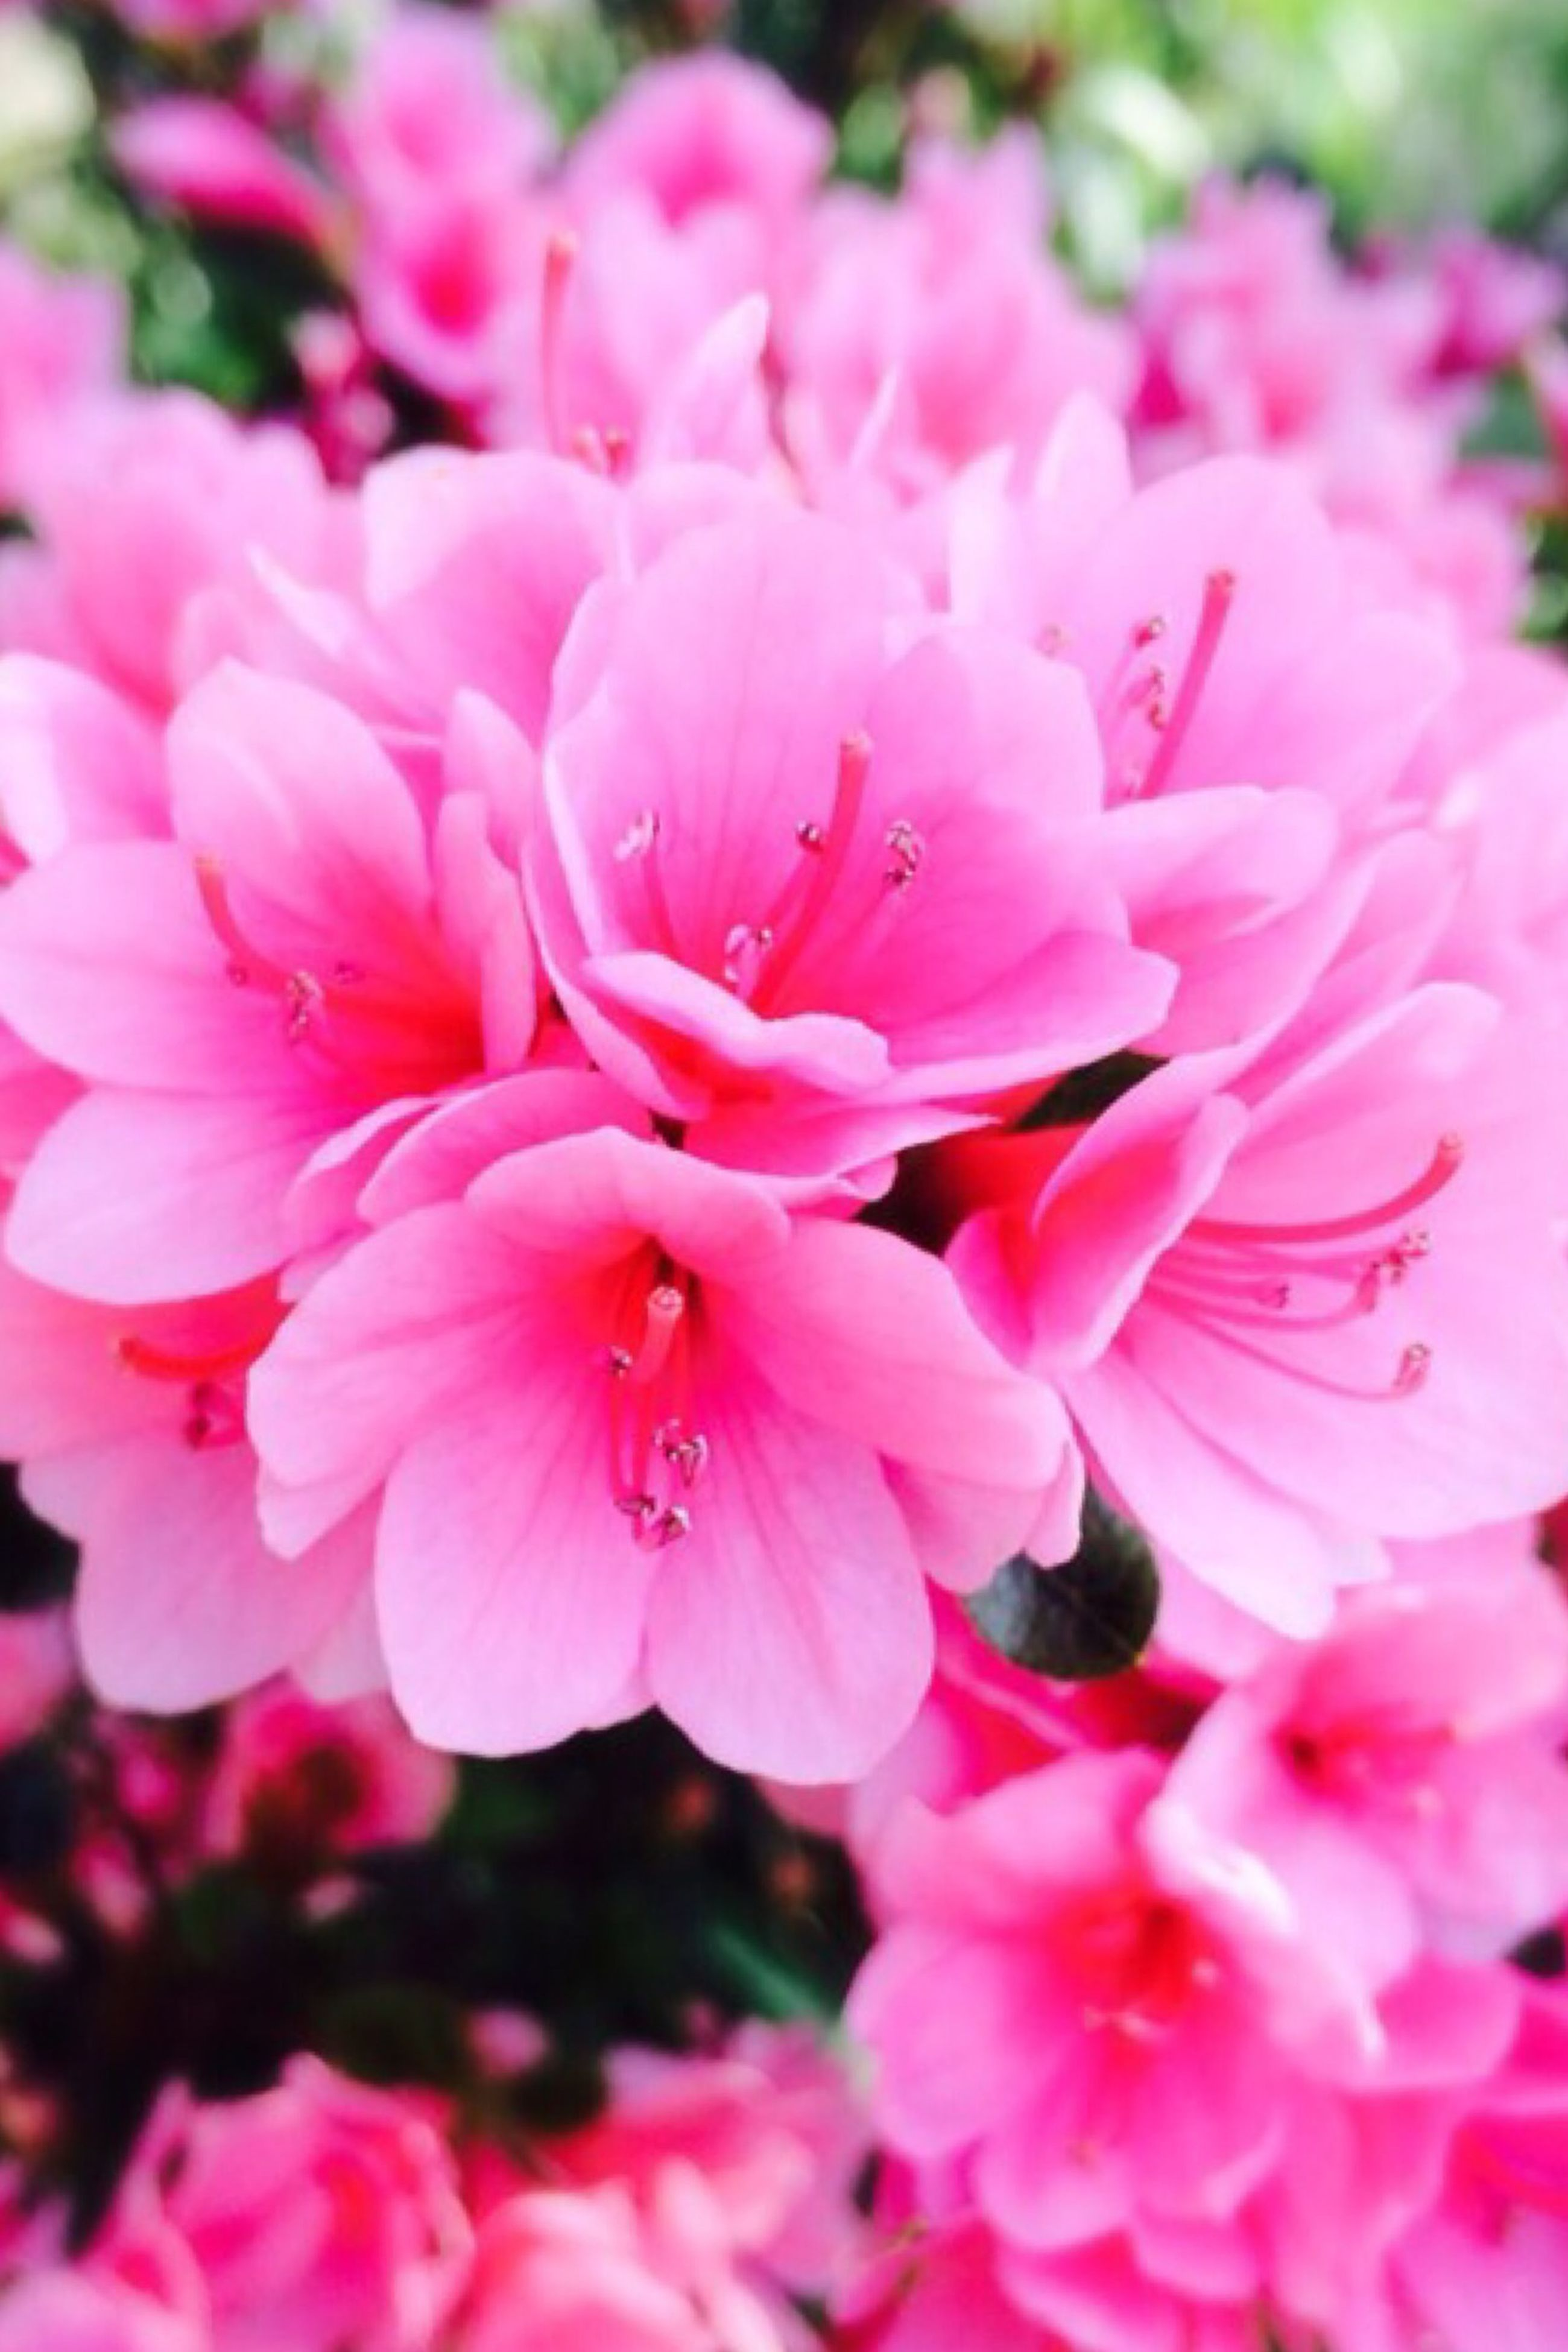 flower, freshness, pink color, petal, fragility, beauty in nature, growth, flower head, close-up, blooming, nature, pink, focus on foreground, in bloom, blossom, park - man made space, selective focus, outdoors, plant, day